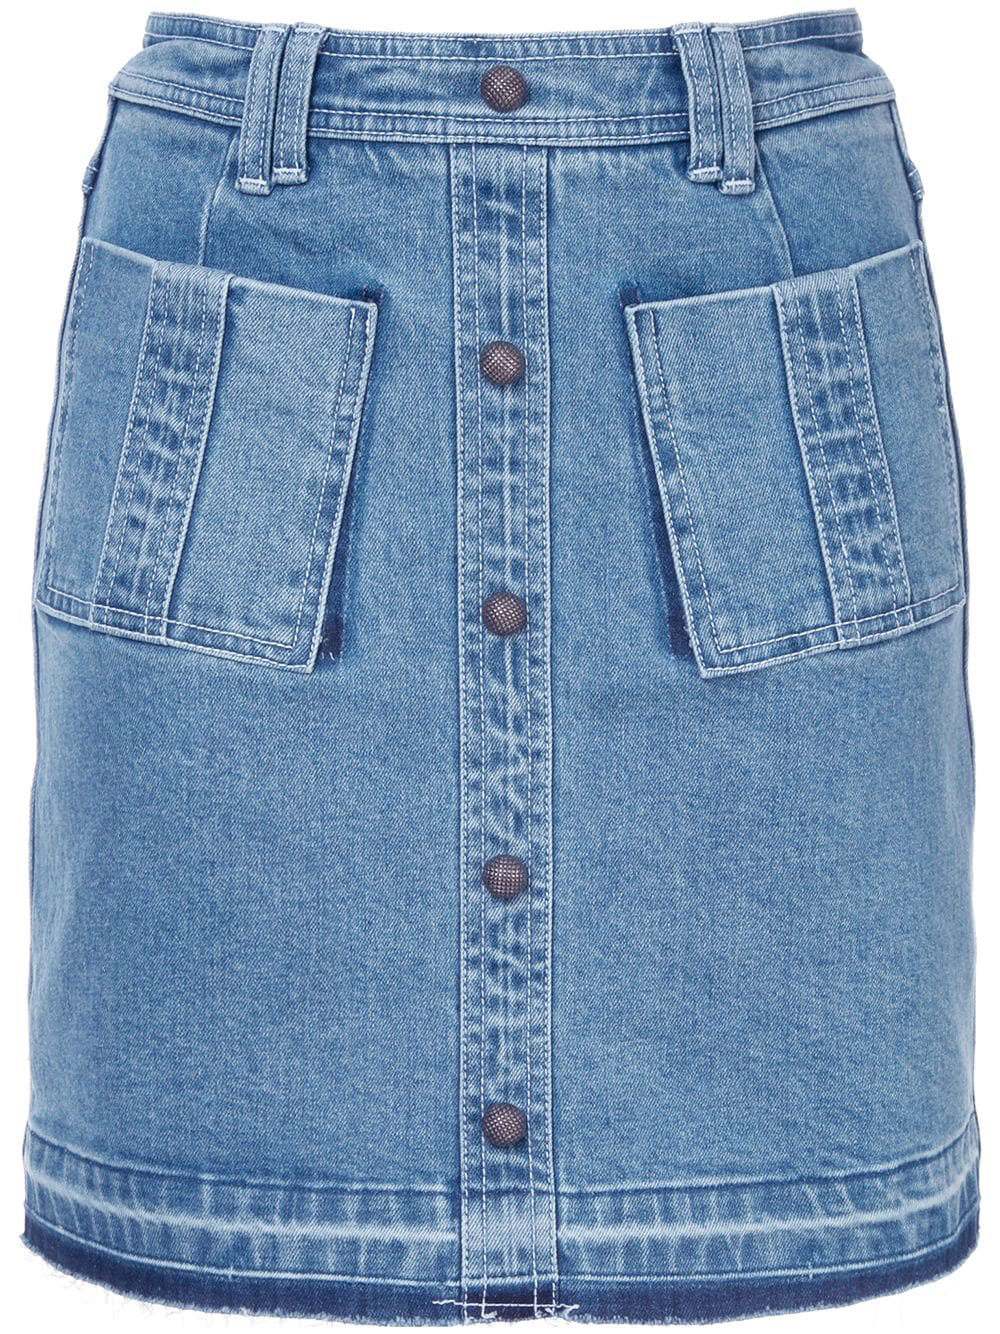 4fe88544ee Stretch Waistband Denim Skirt – DACC